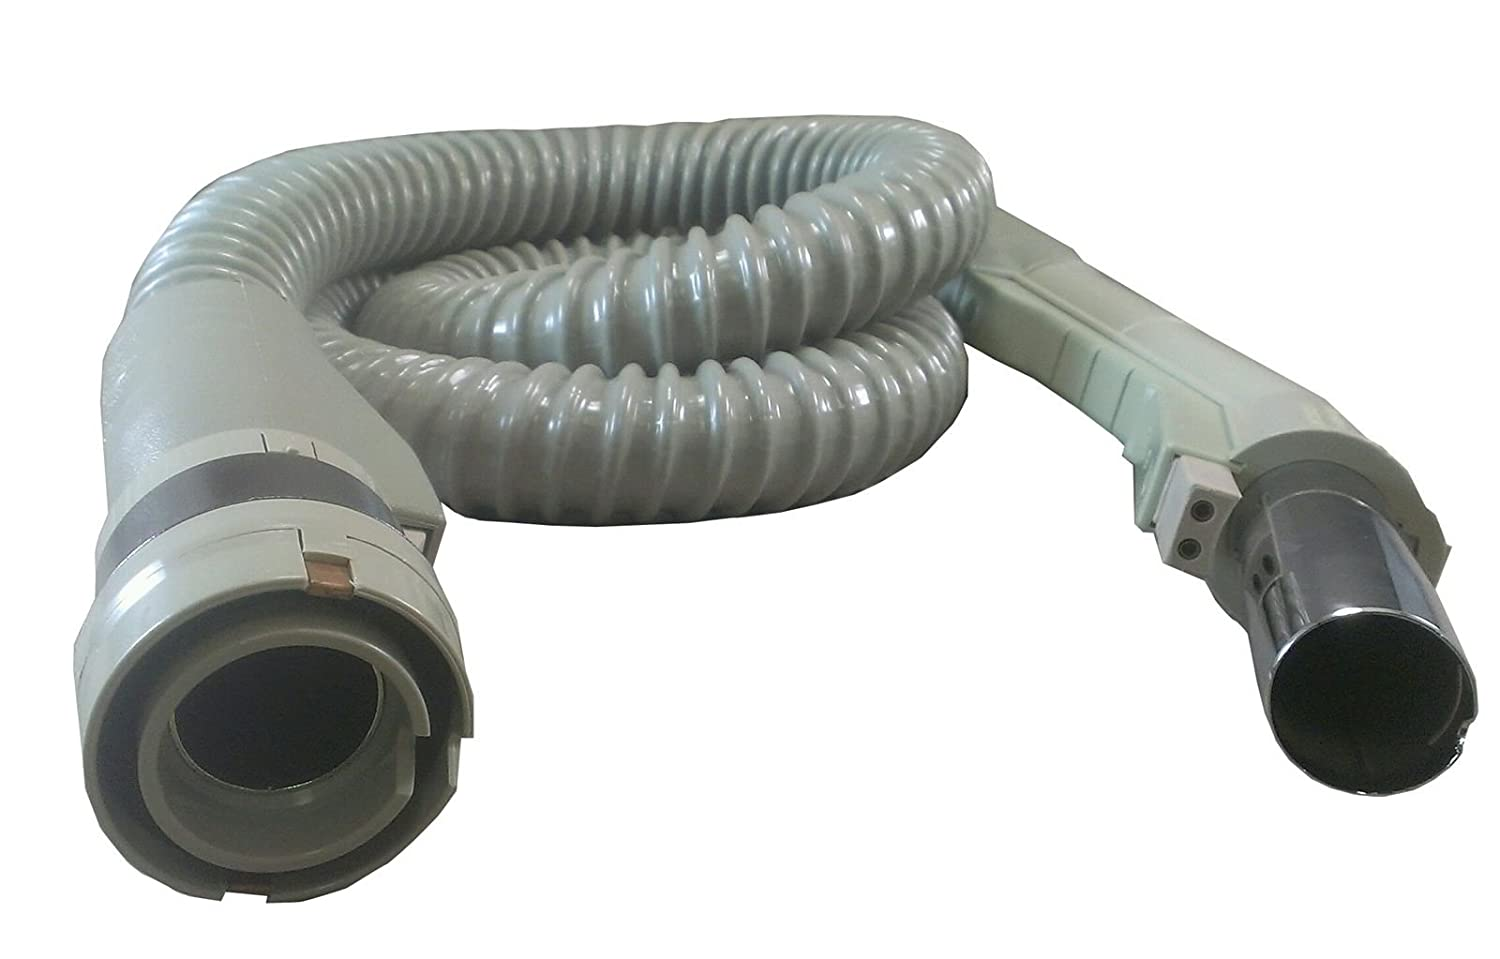 Generic Electrolux Canister Vacuum Cleaner Cordwinder